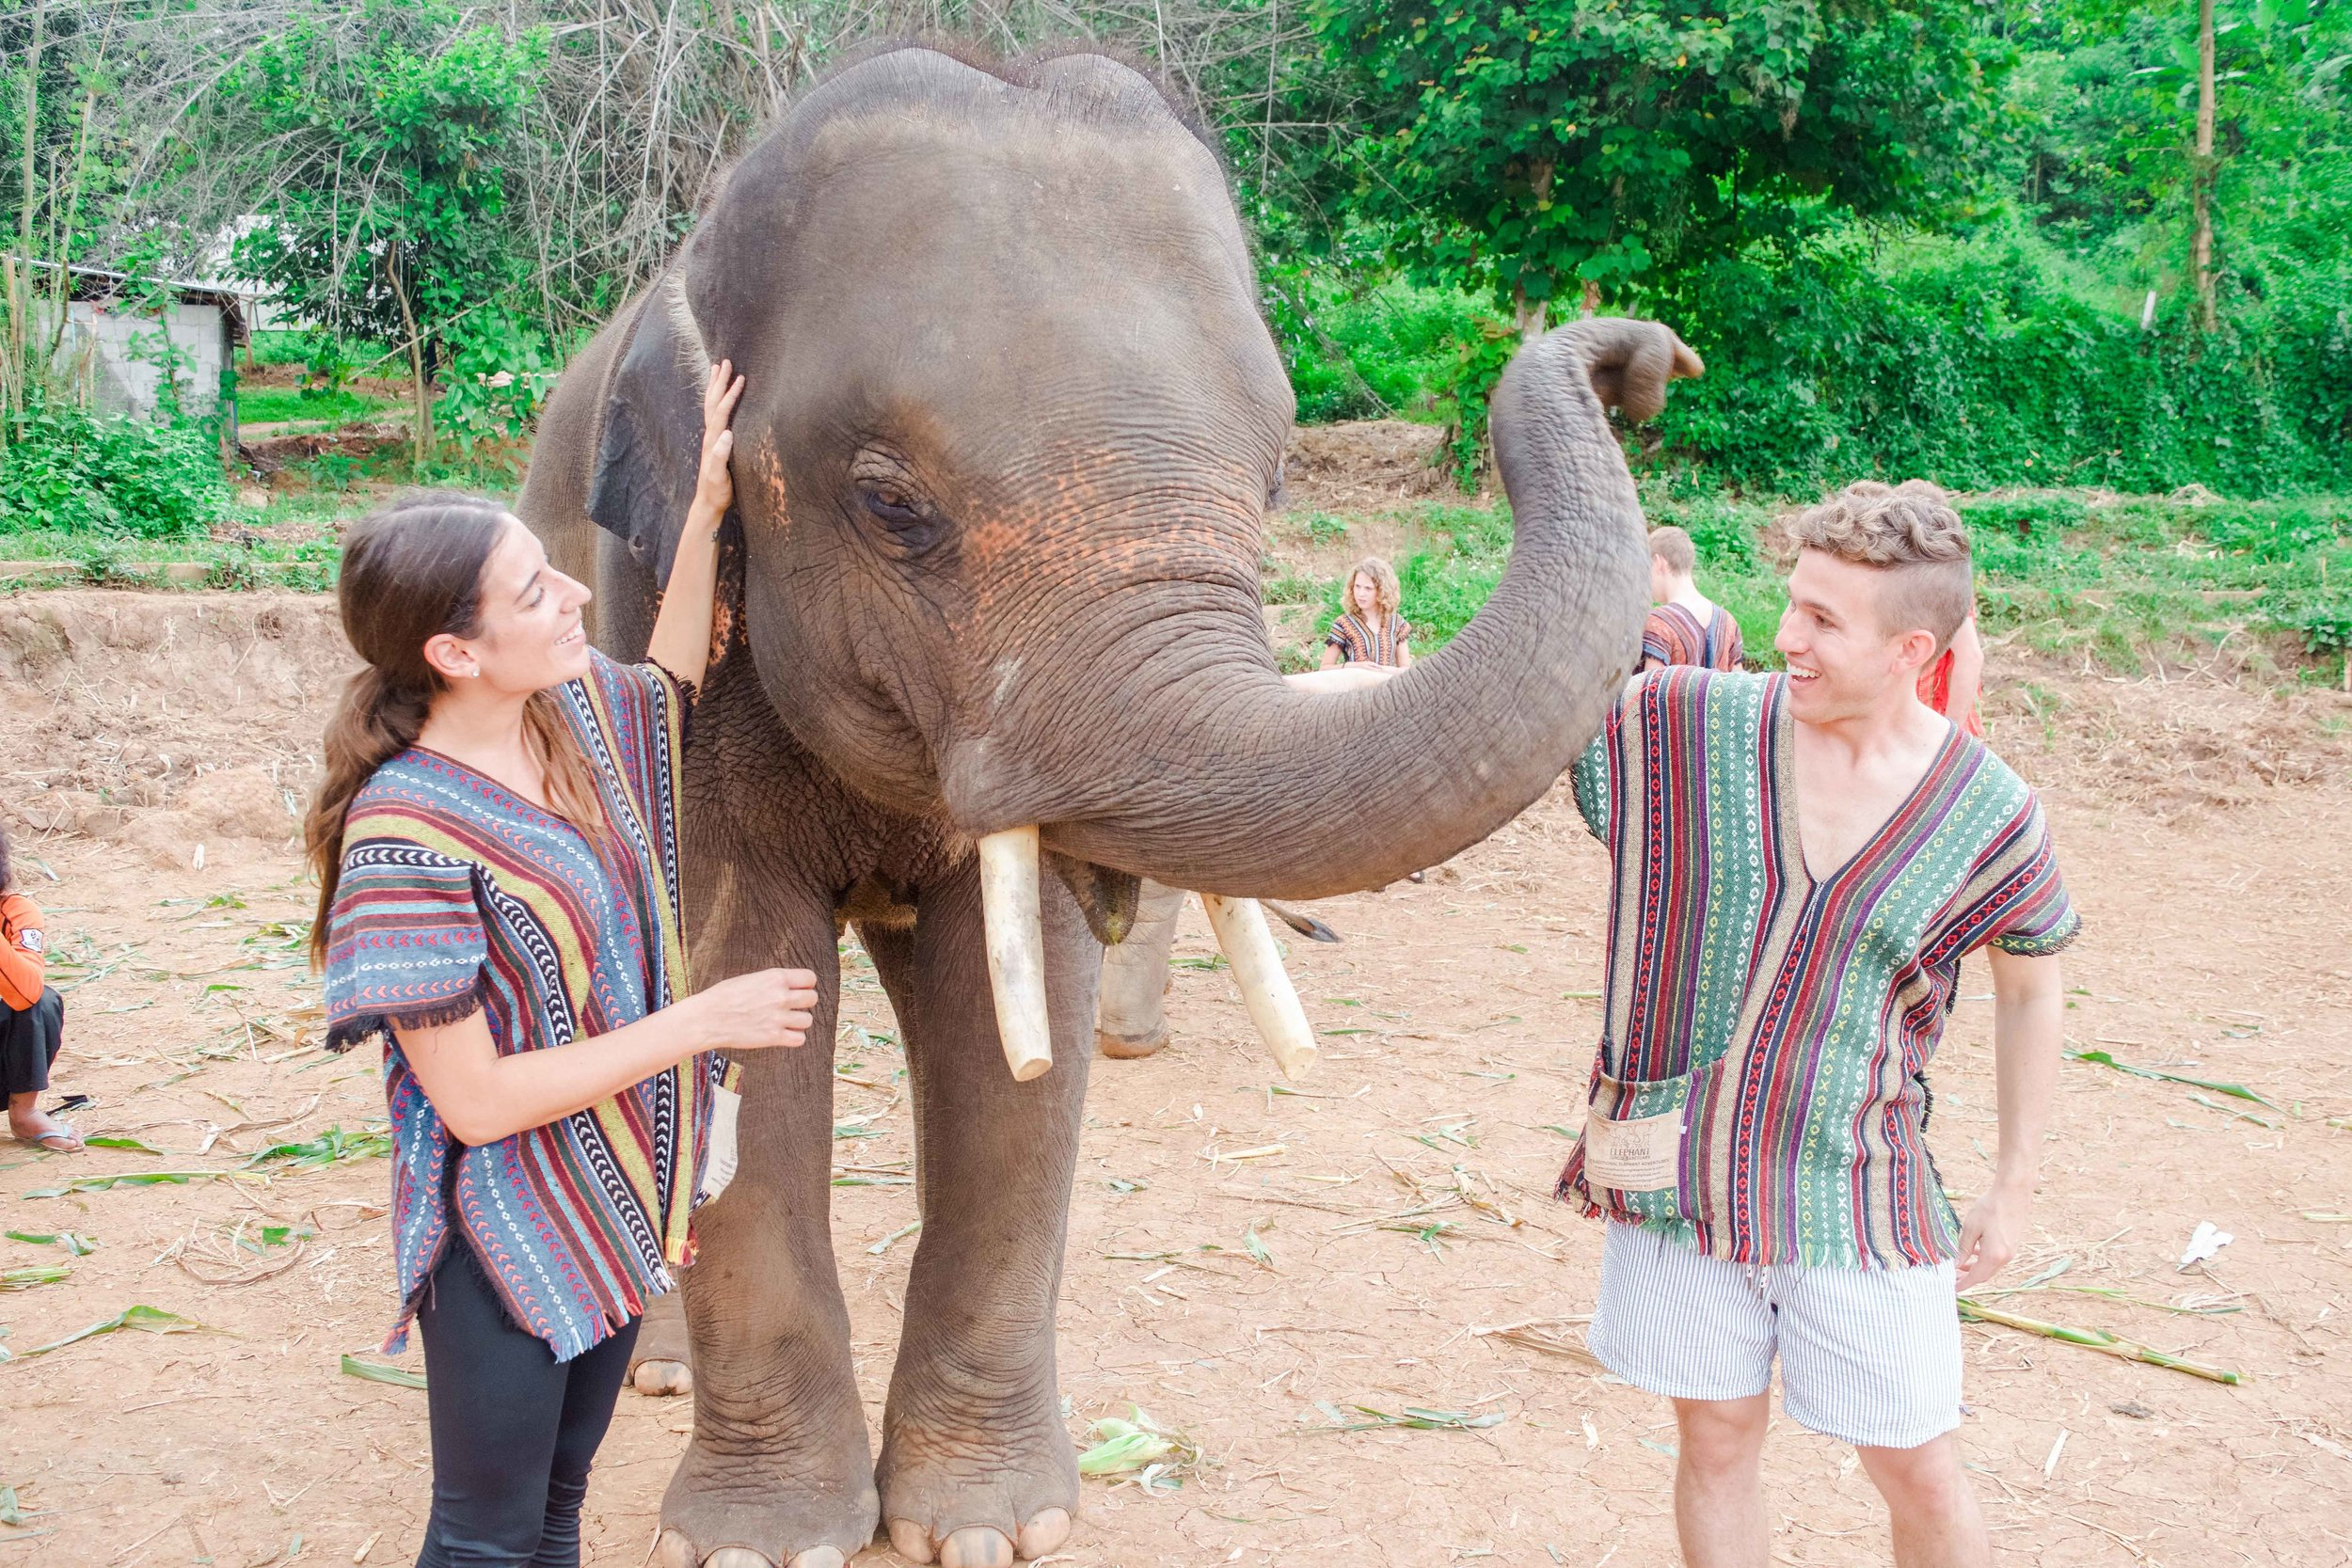 Ending the day at Elephant Nature park in Chiang Mai